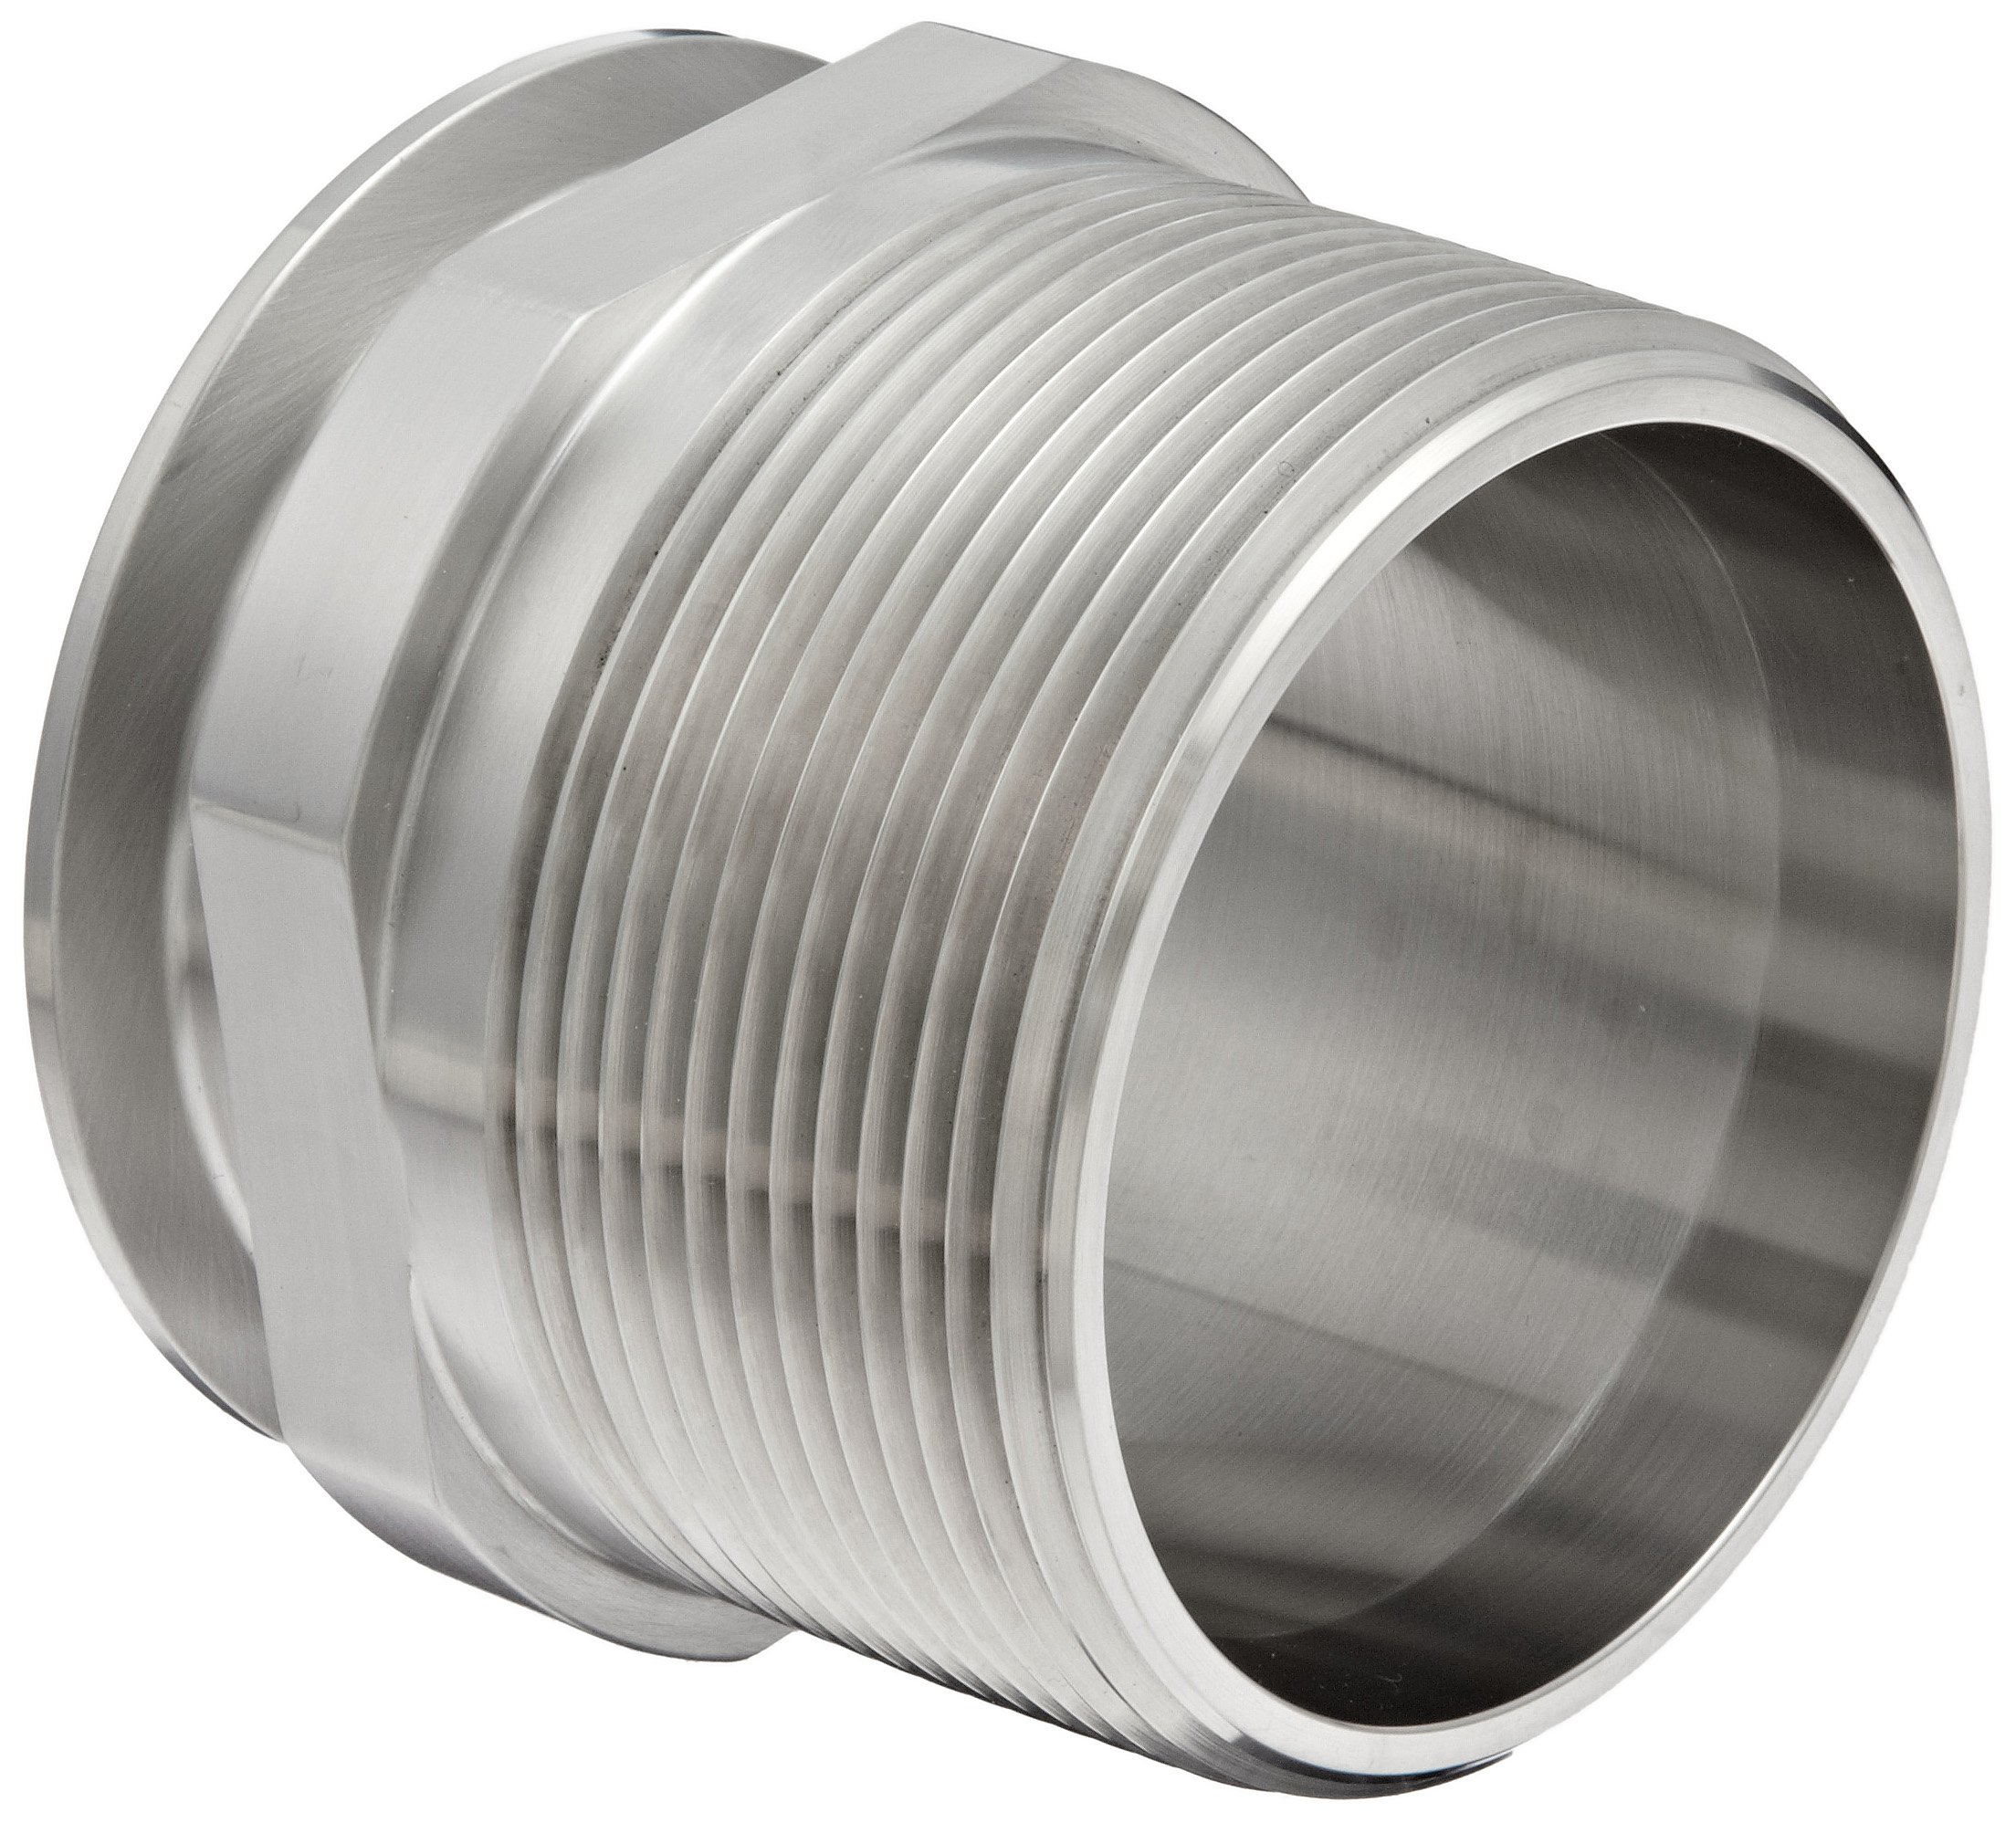 Dixon 21MP-G300 Stainless Steel 304 Sanitary Fitting, Clamp Adapter, 3'' Tube OD x 3'' NPT Male